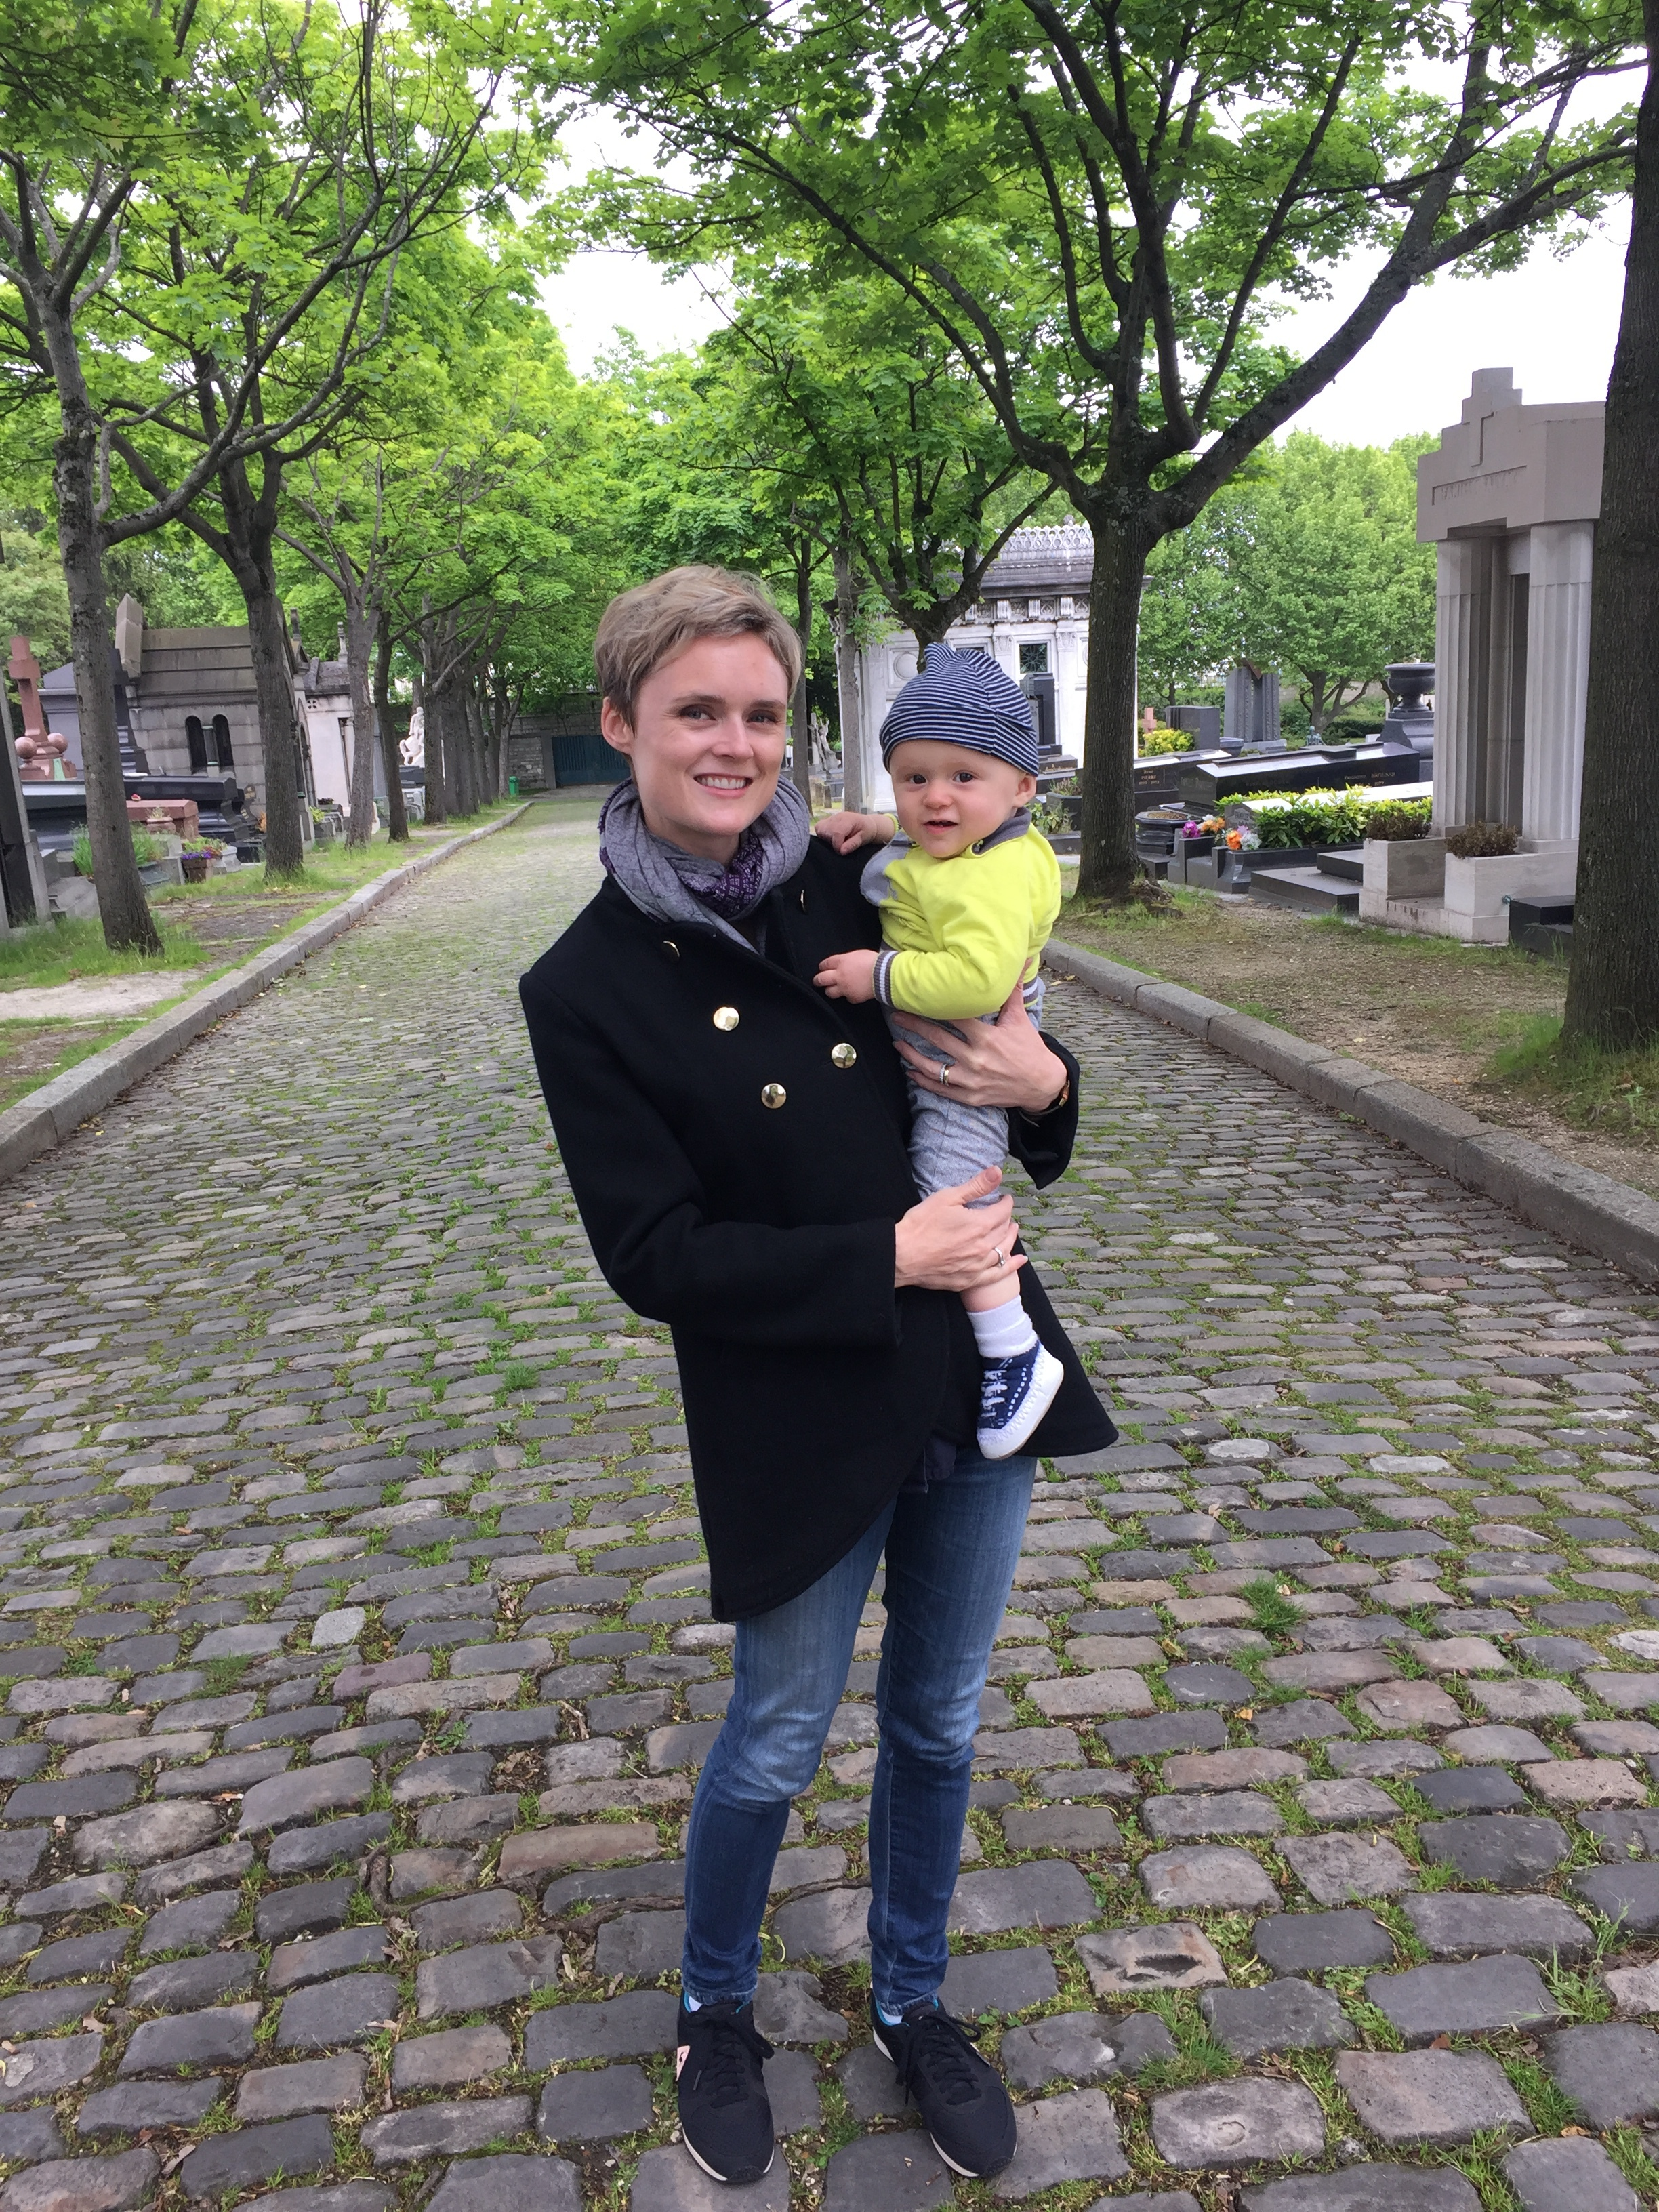 Pere Lachaise cemetery, decidedly not stroller-friendly but a great spot for letting baby roam freely.